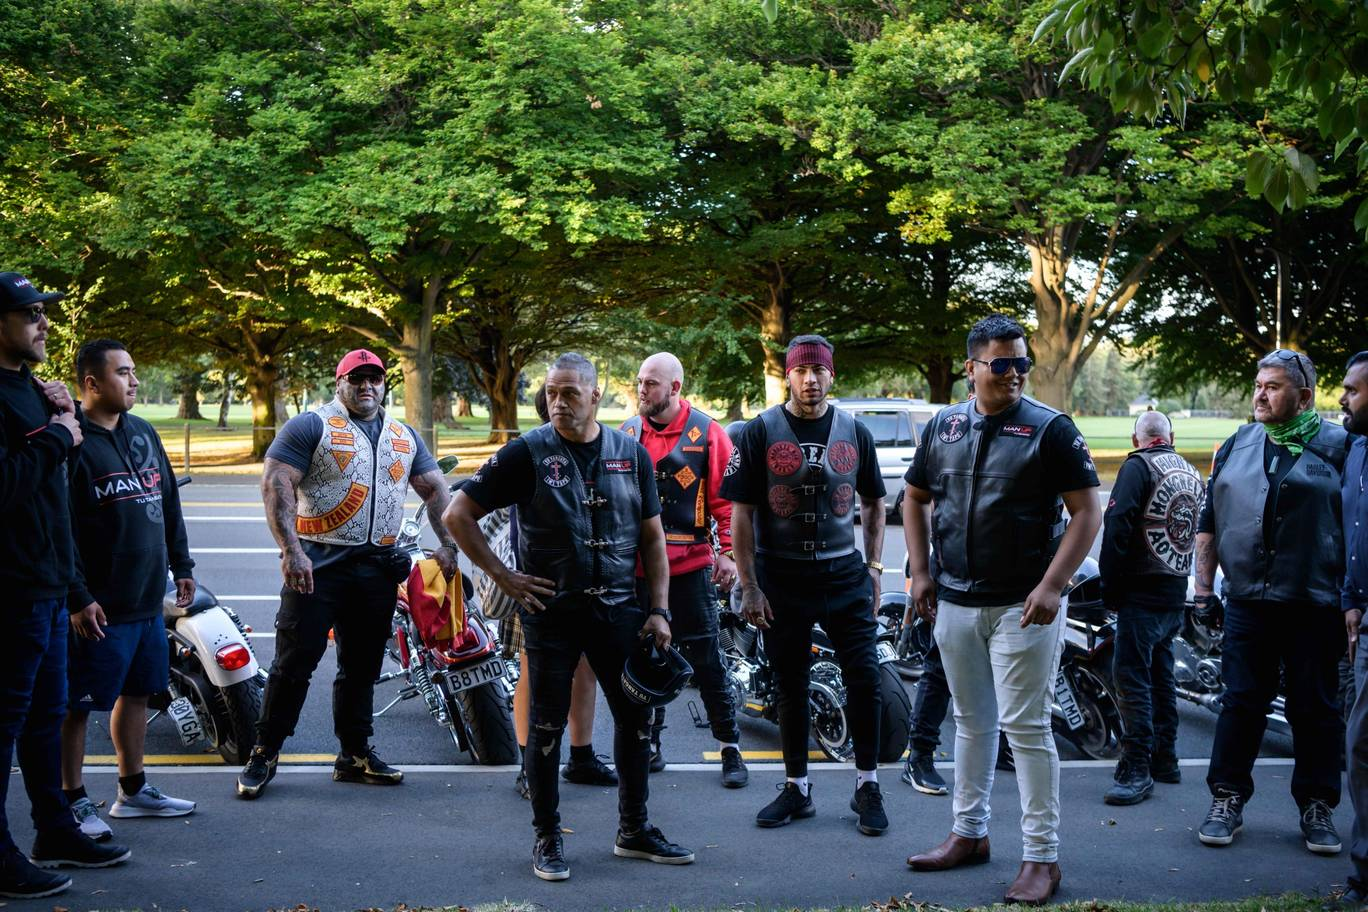 Biker gang members pay their respects to victims of the Christchurch shootings